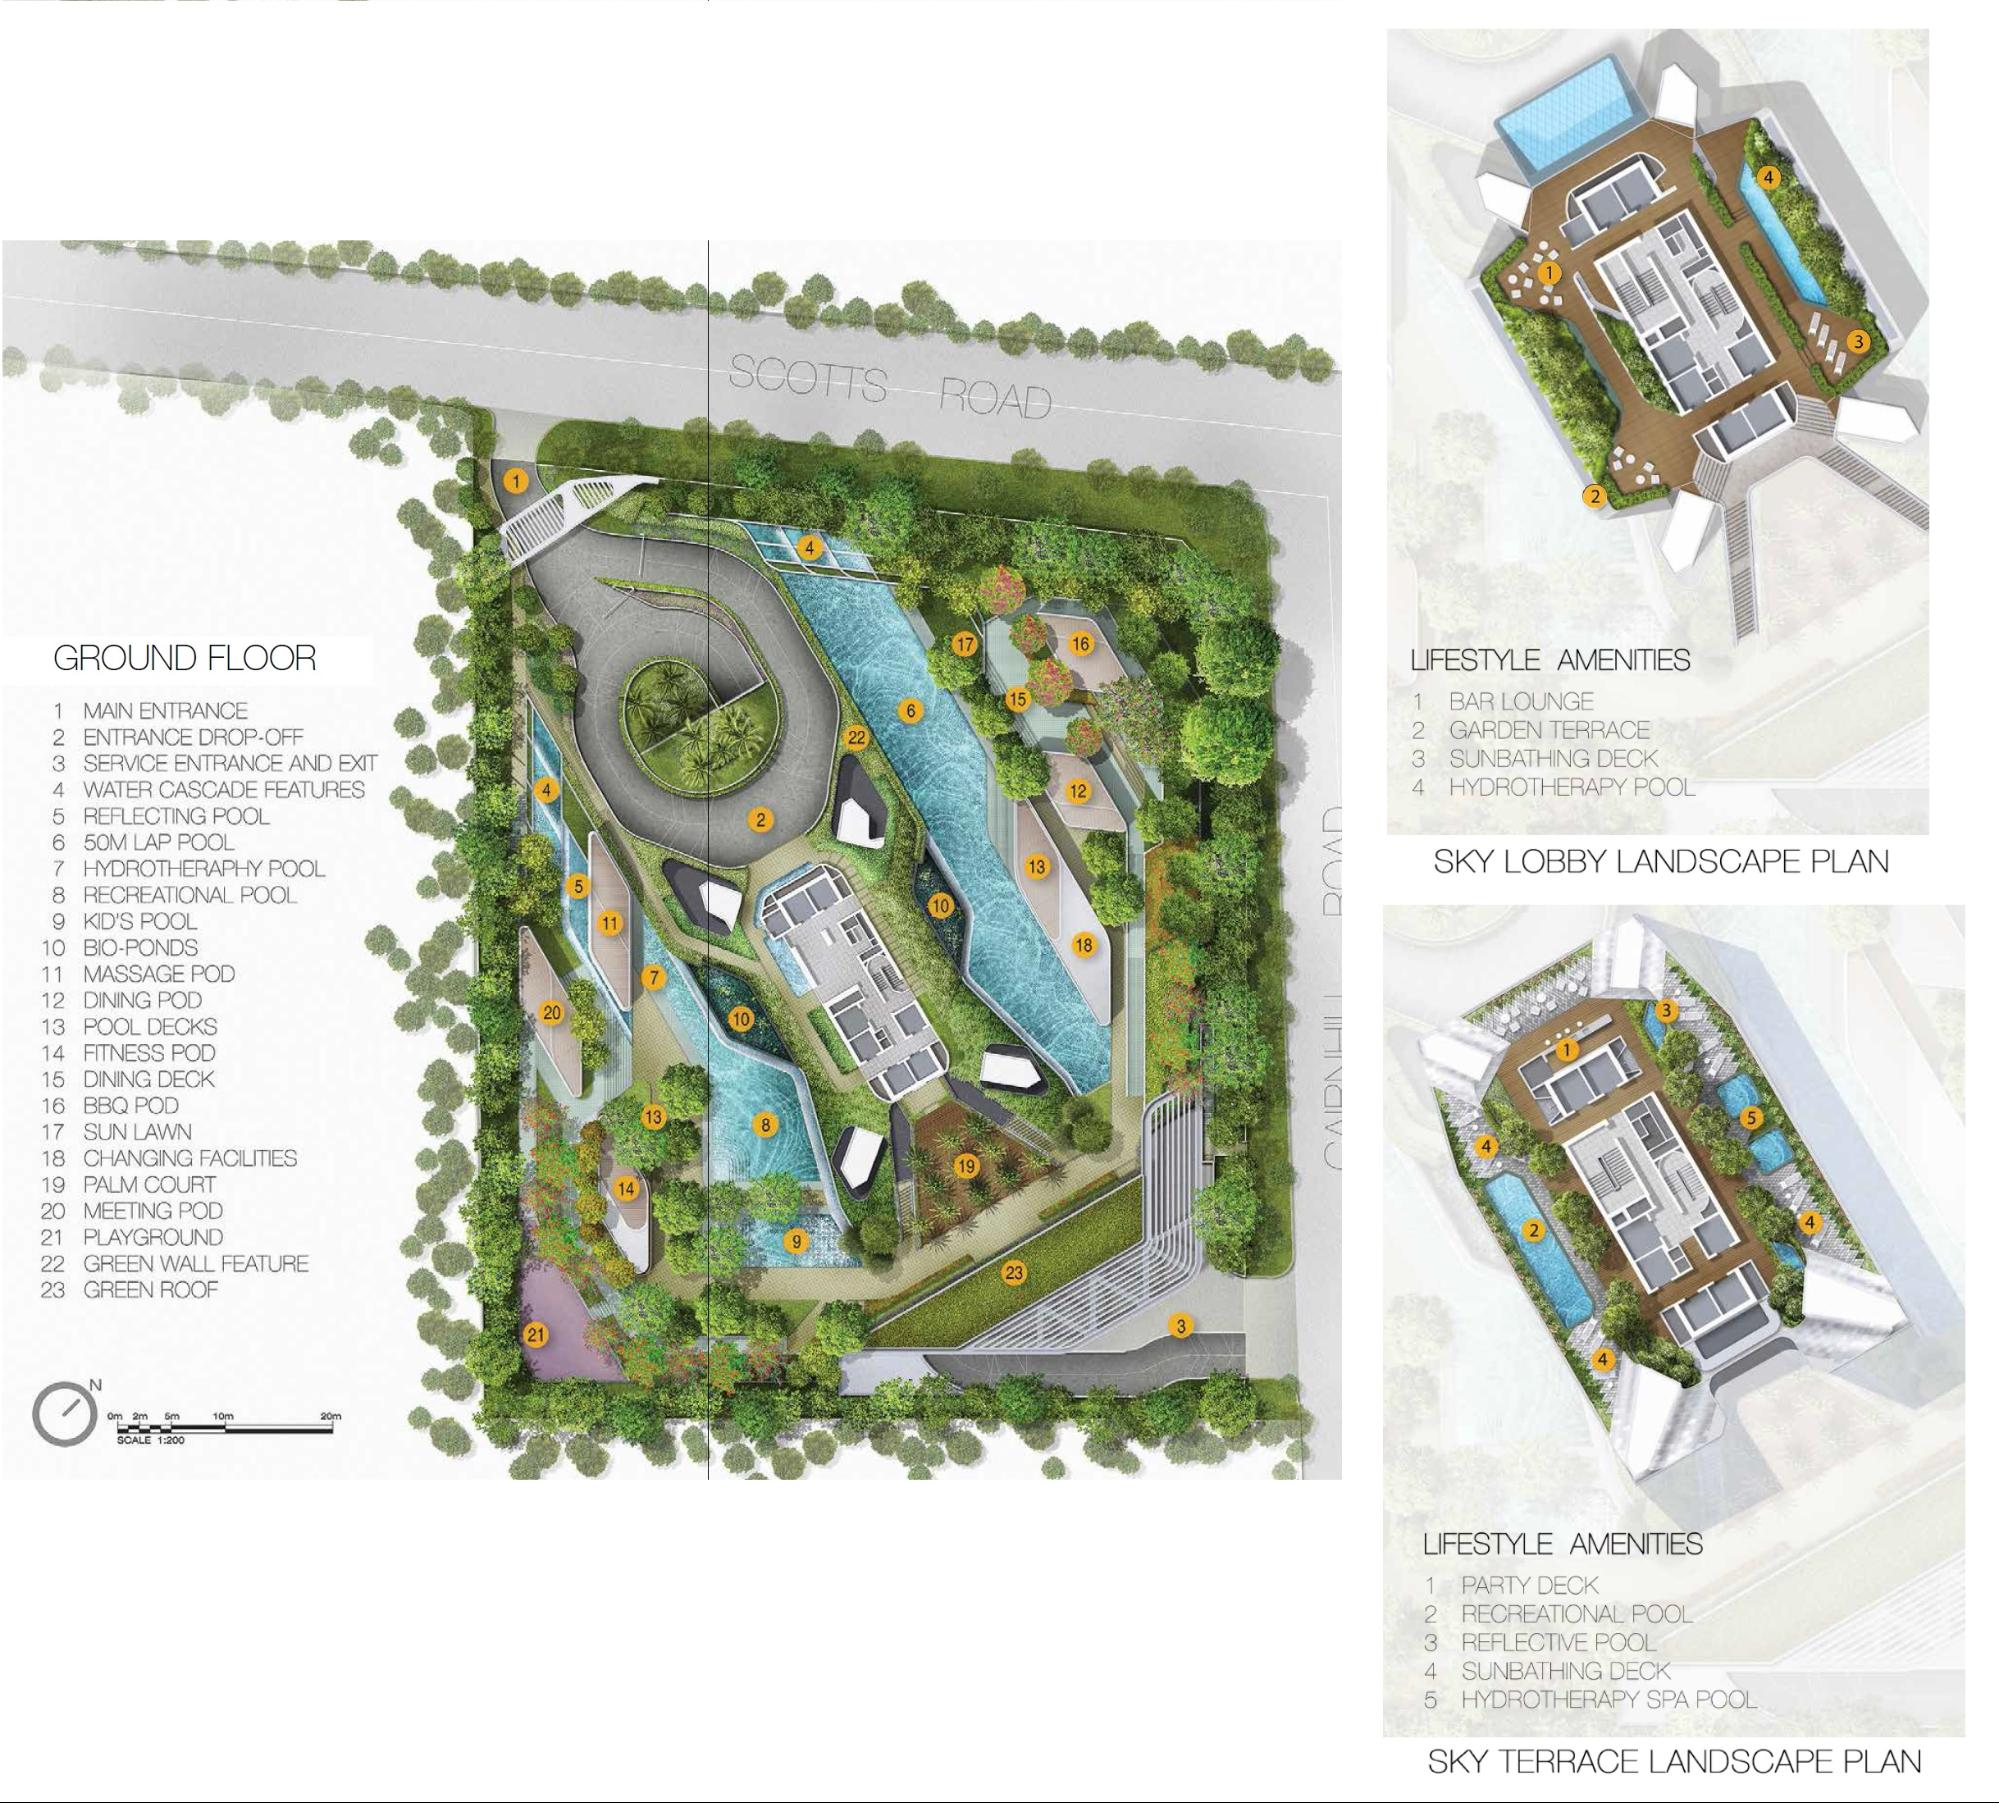 the scotts tower site plan